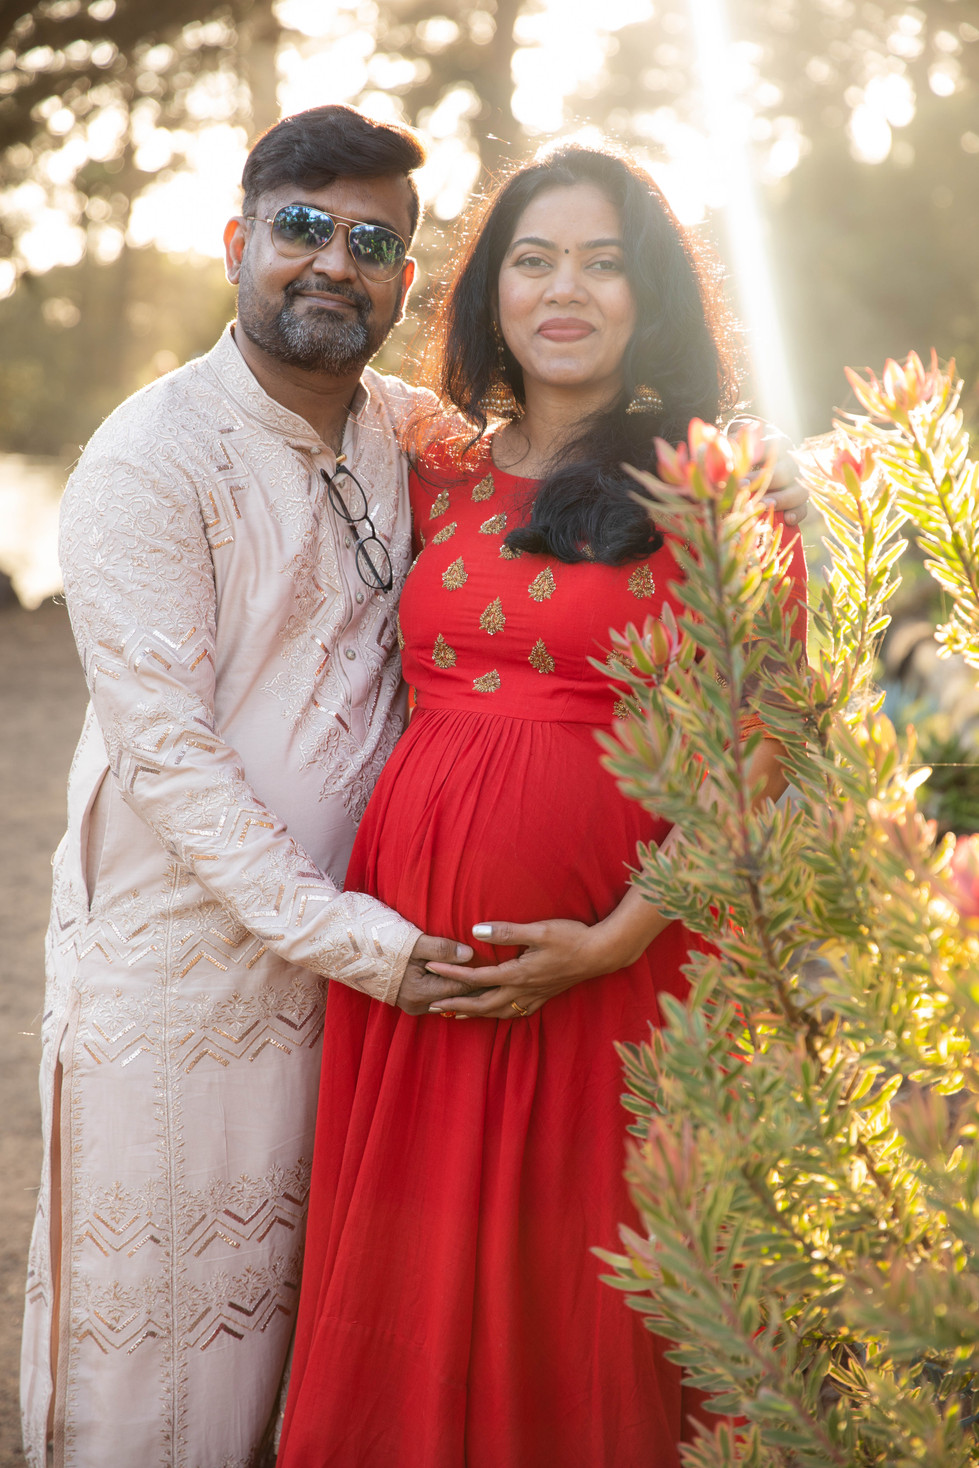 San Francisco Stow Lake Maternity Photoshoot